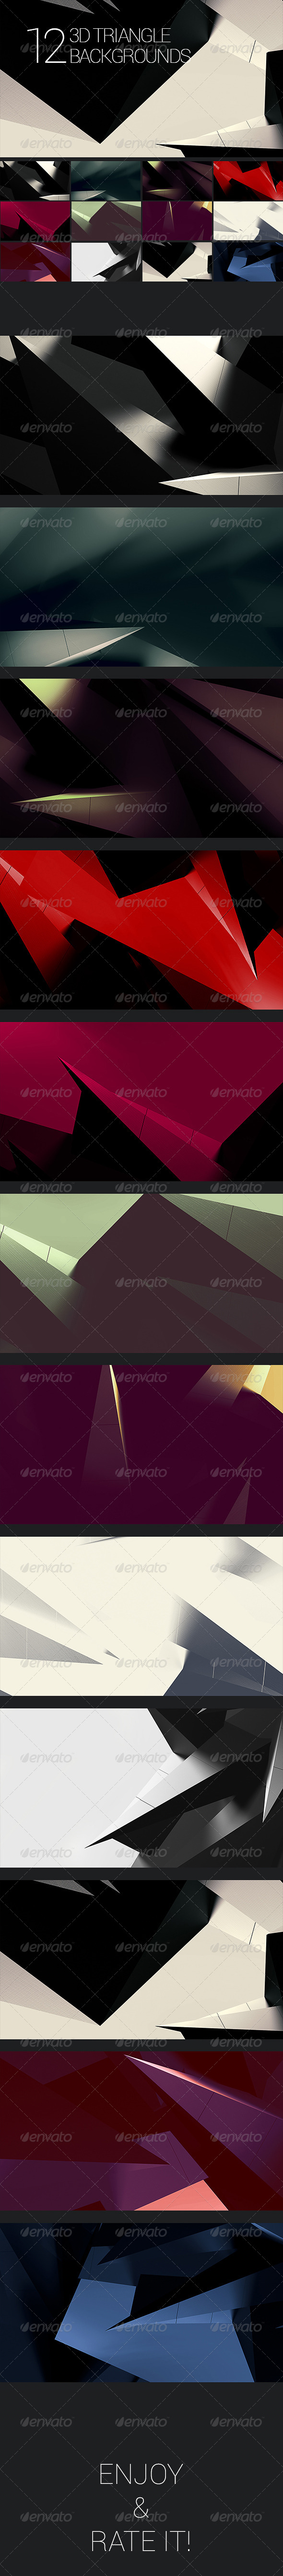 3D Polygon Backgrounds - Abstract Set 2